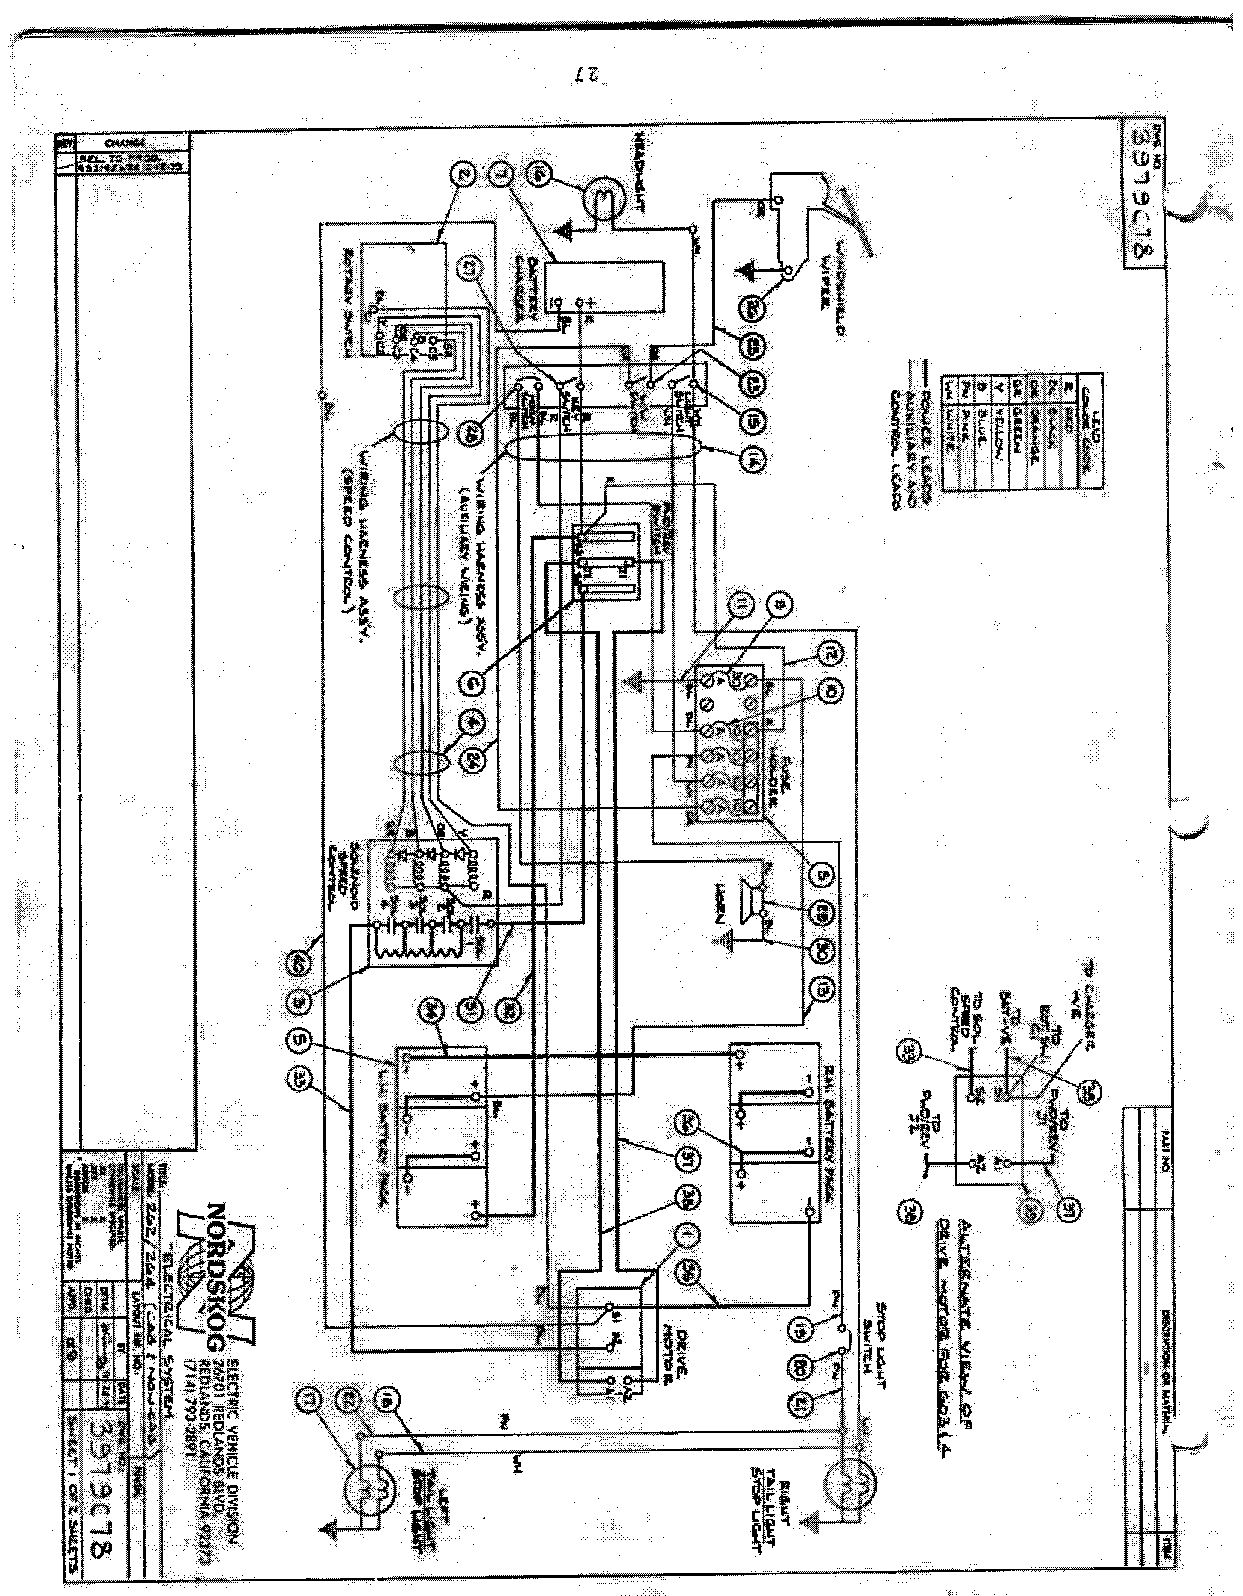 Nordskog262_264 vintagegolfcartparts com westinghouse golf cart wiring diagram at soozxer.org